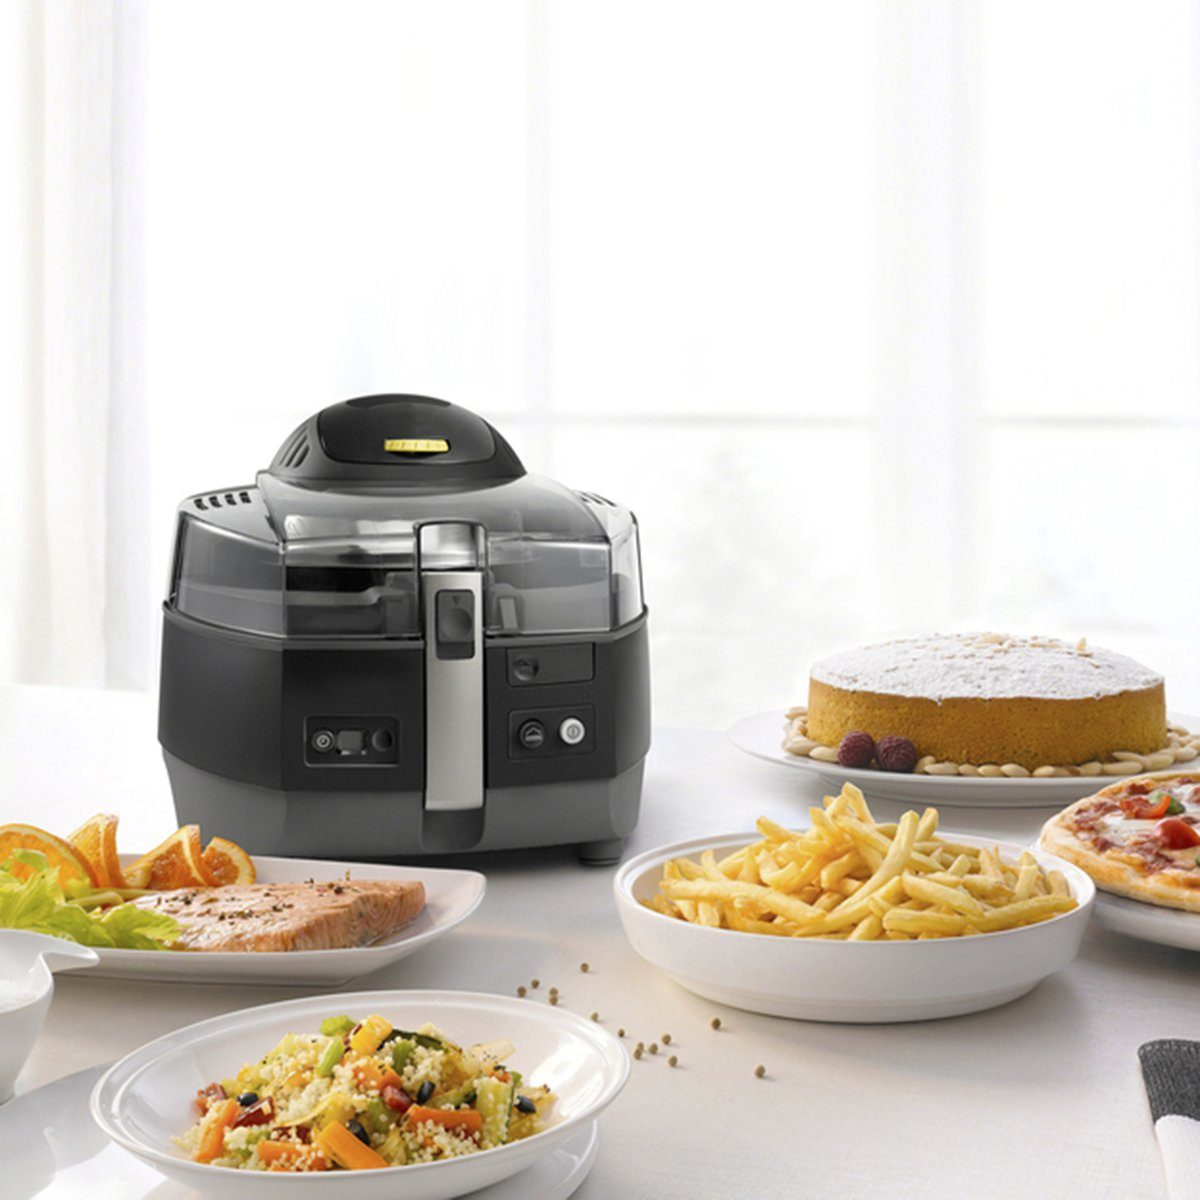 air fryer with foods